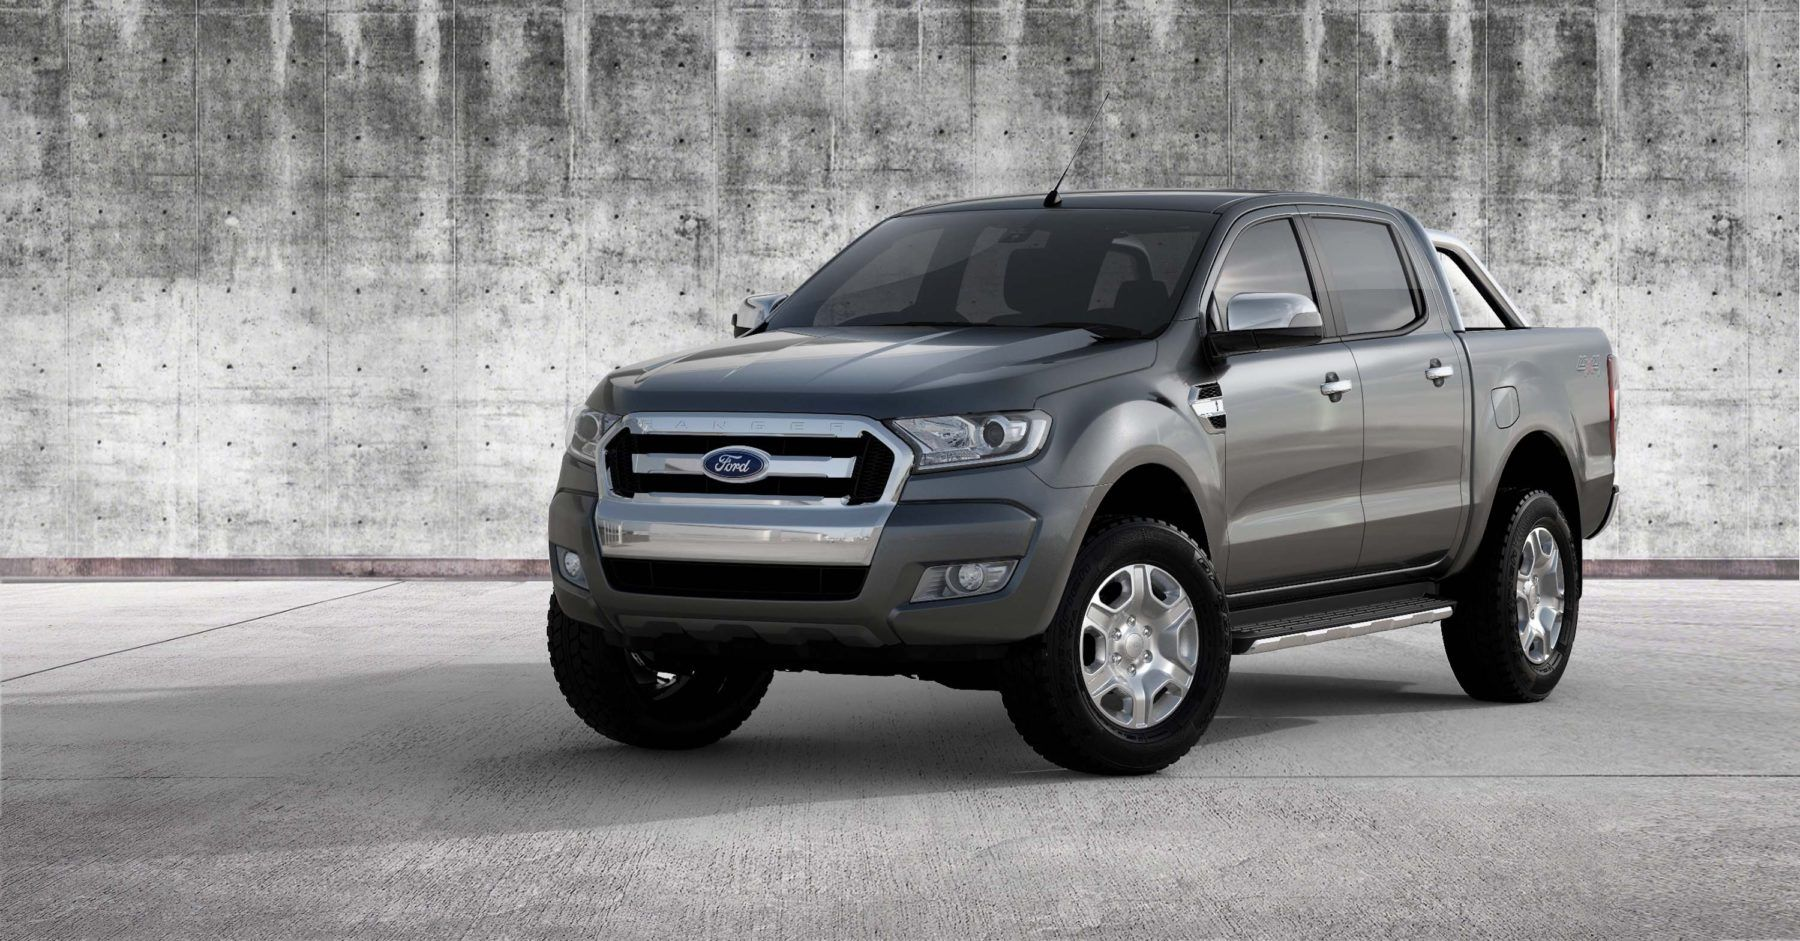 2018 Ford Ranger | New Design Wallpaper | New Car Release News